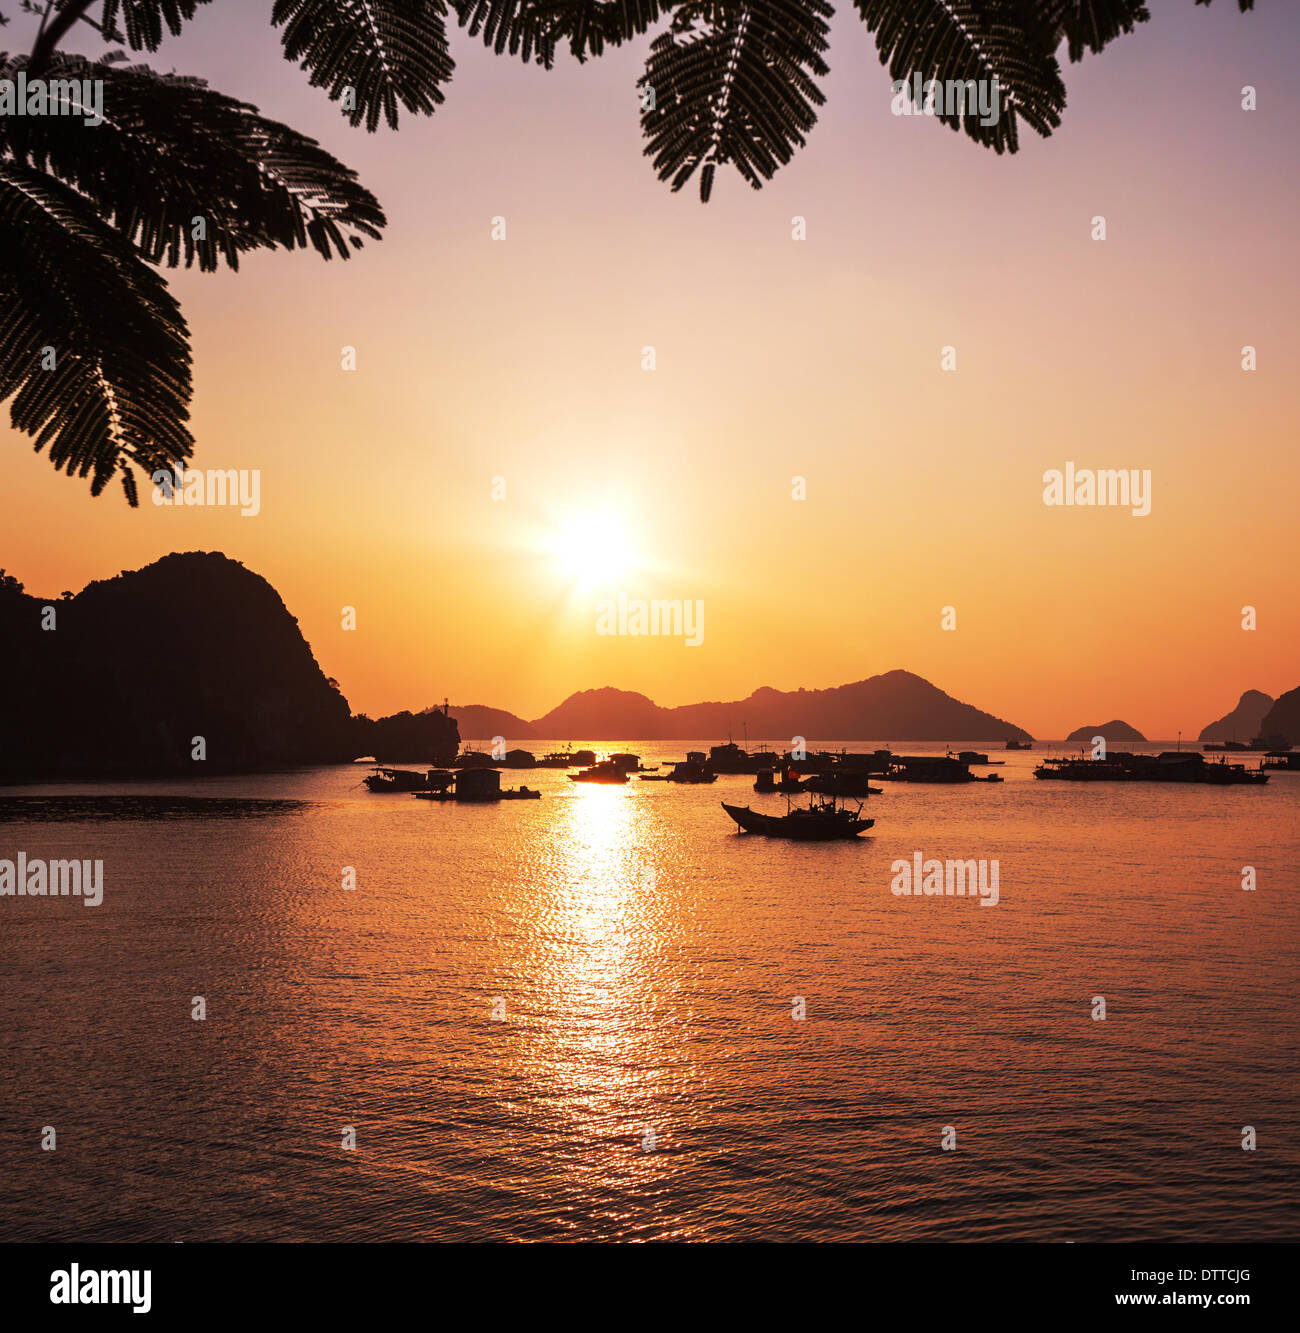 Halong Photo Stock